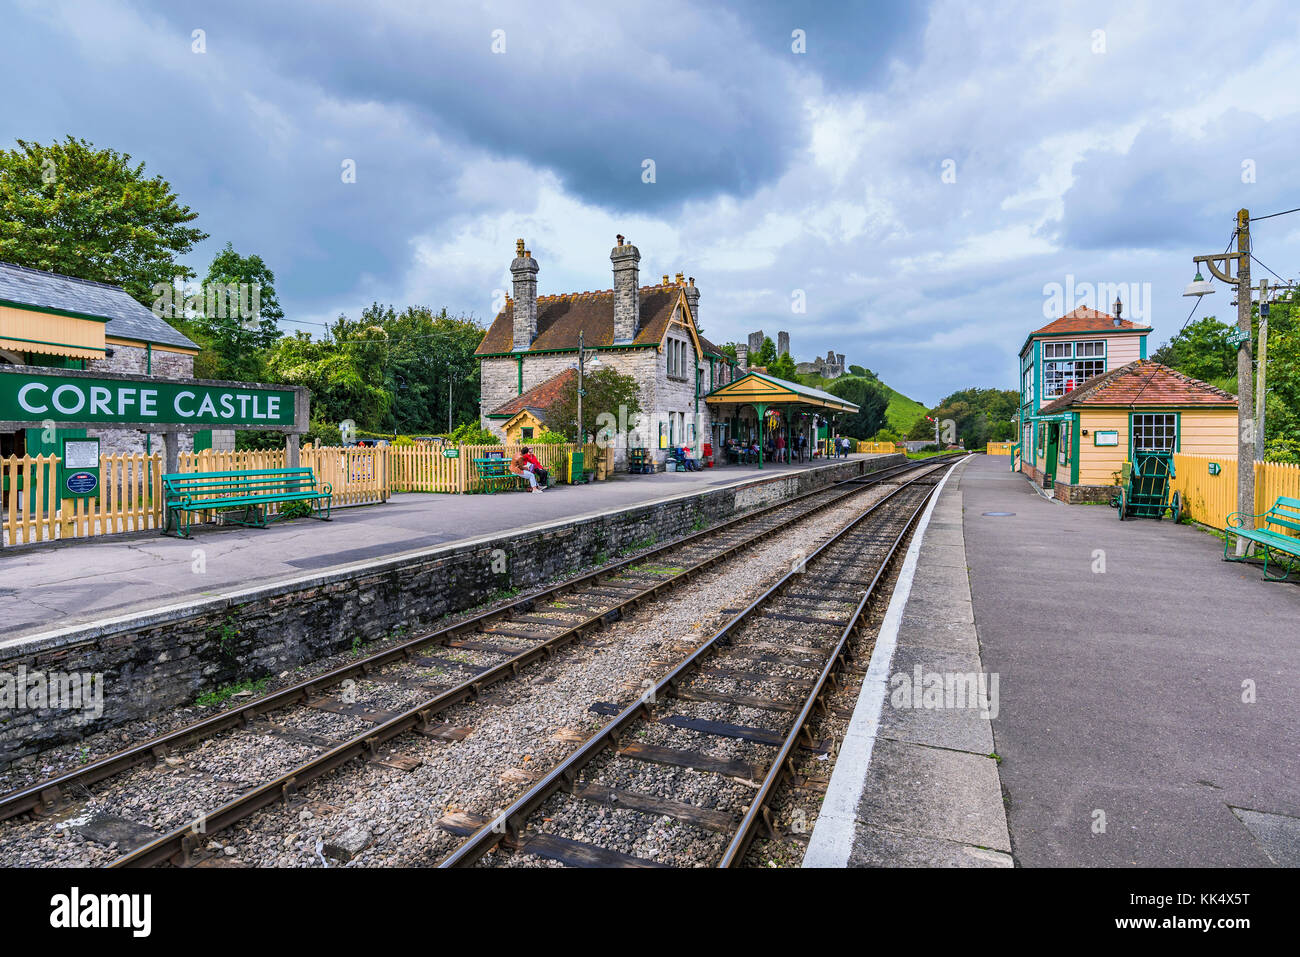 CORFE, UNITED KINGDOM - SEPTEMBER 06: This is Corfe Castle railway station. Corfe is a small medieval village with - Stock Image